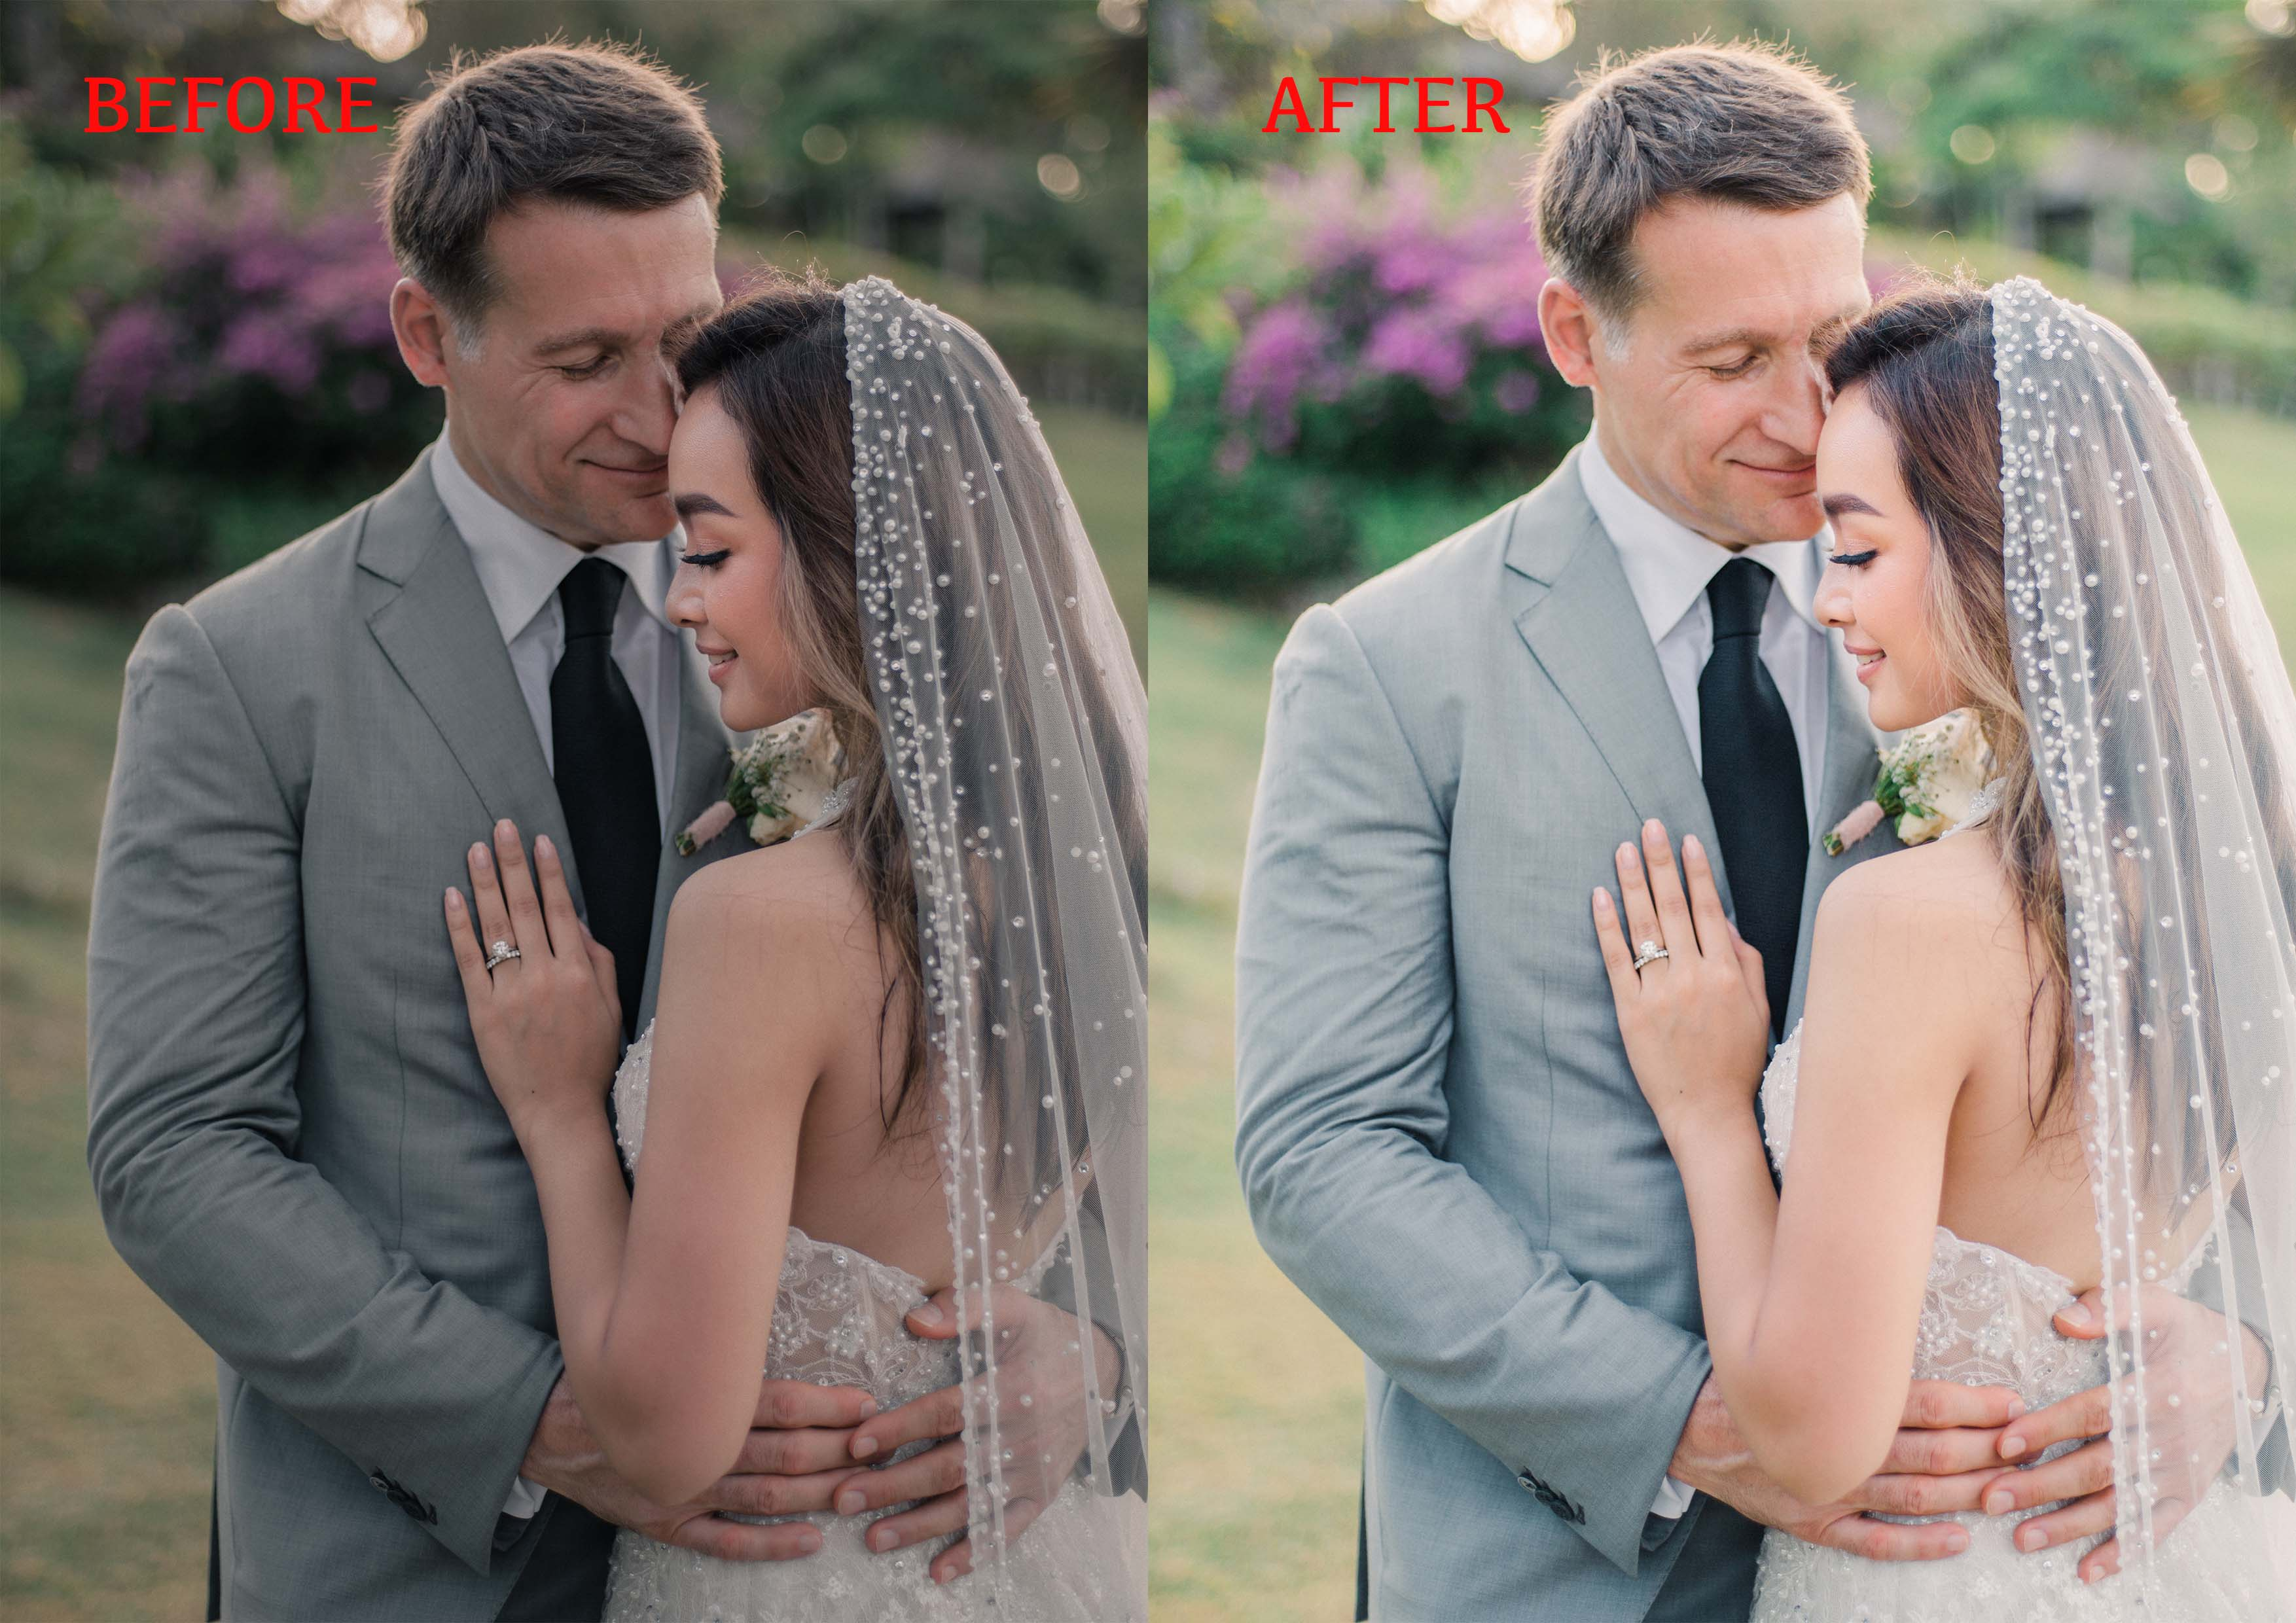 I will edit wedding pictures and color correction